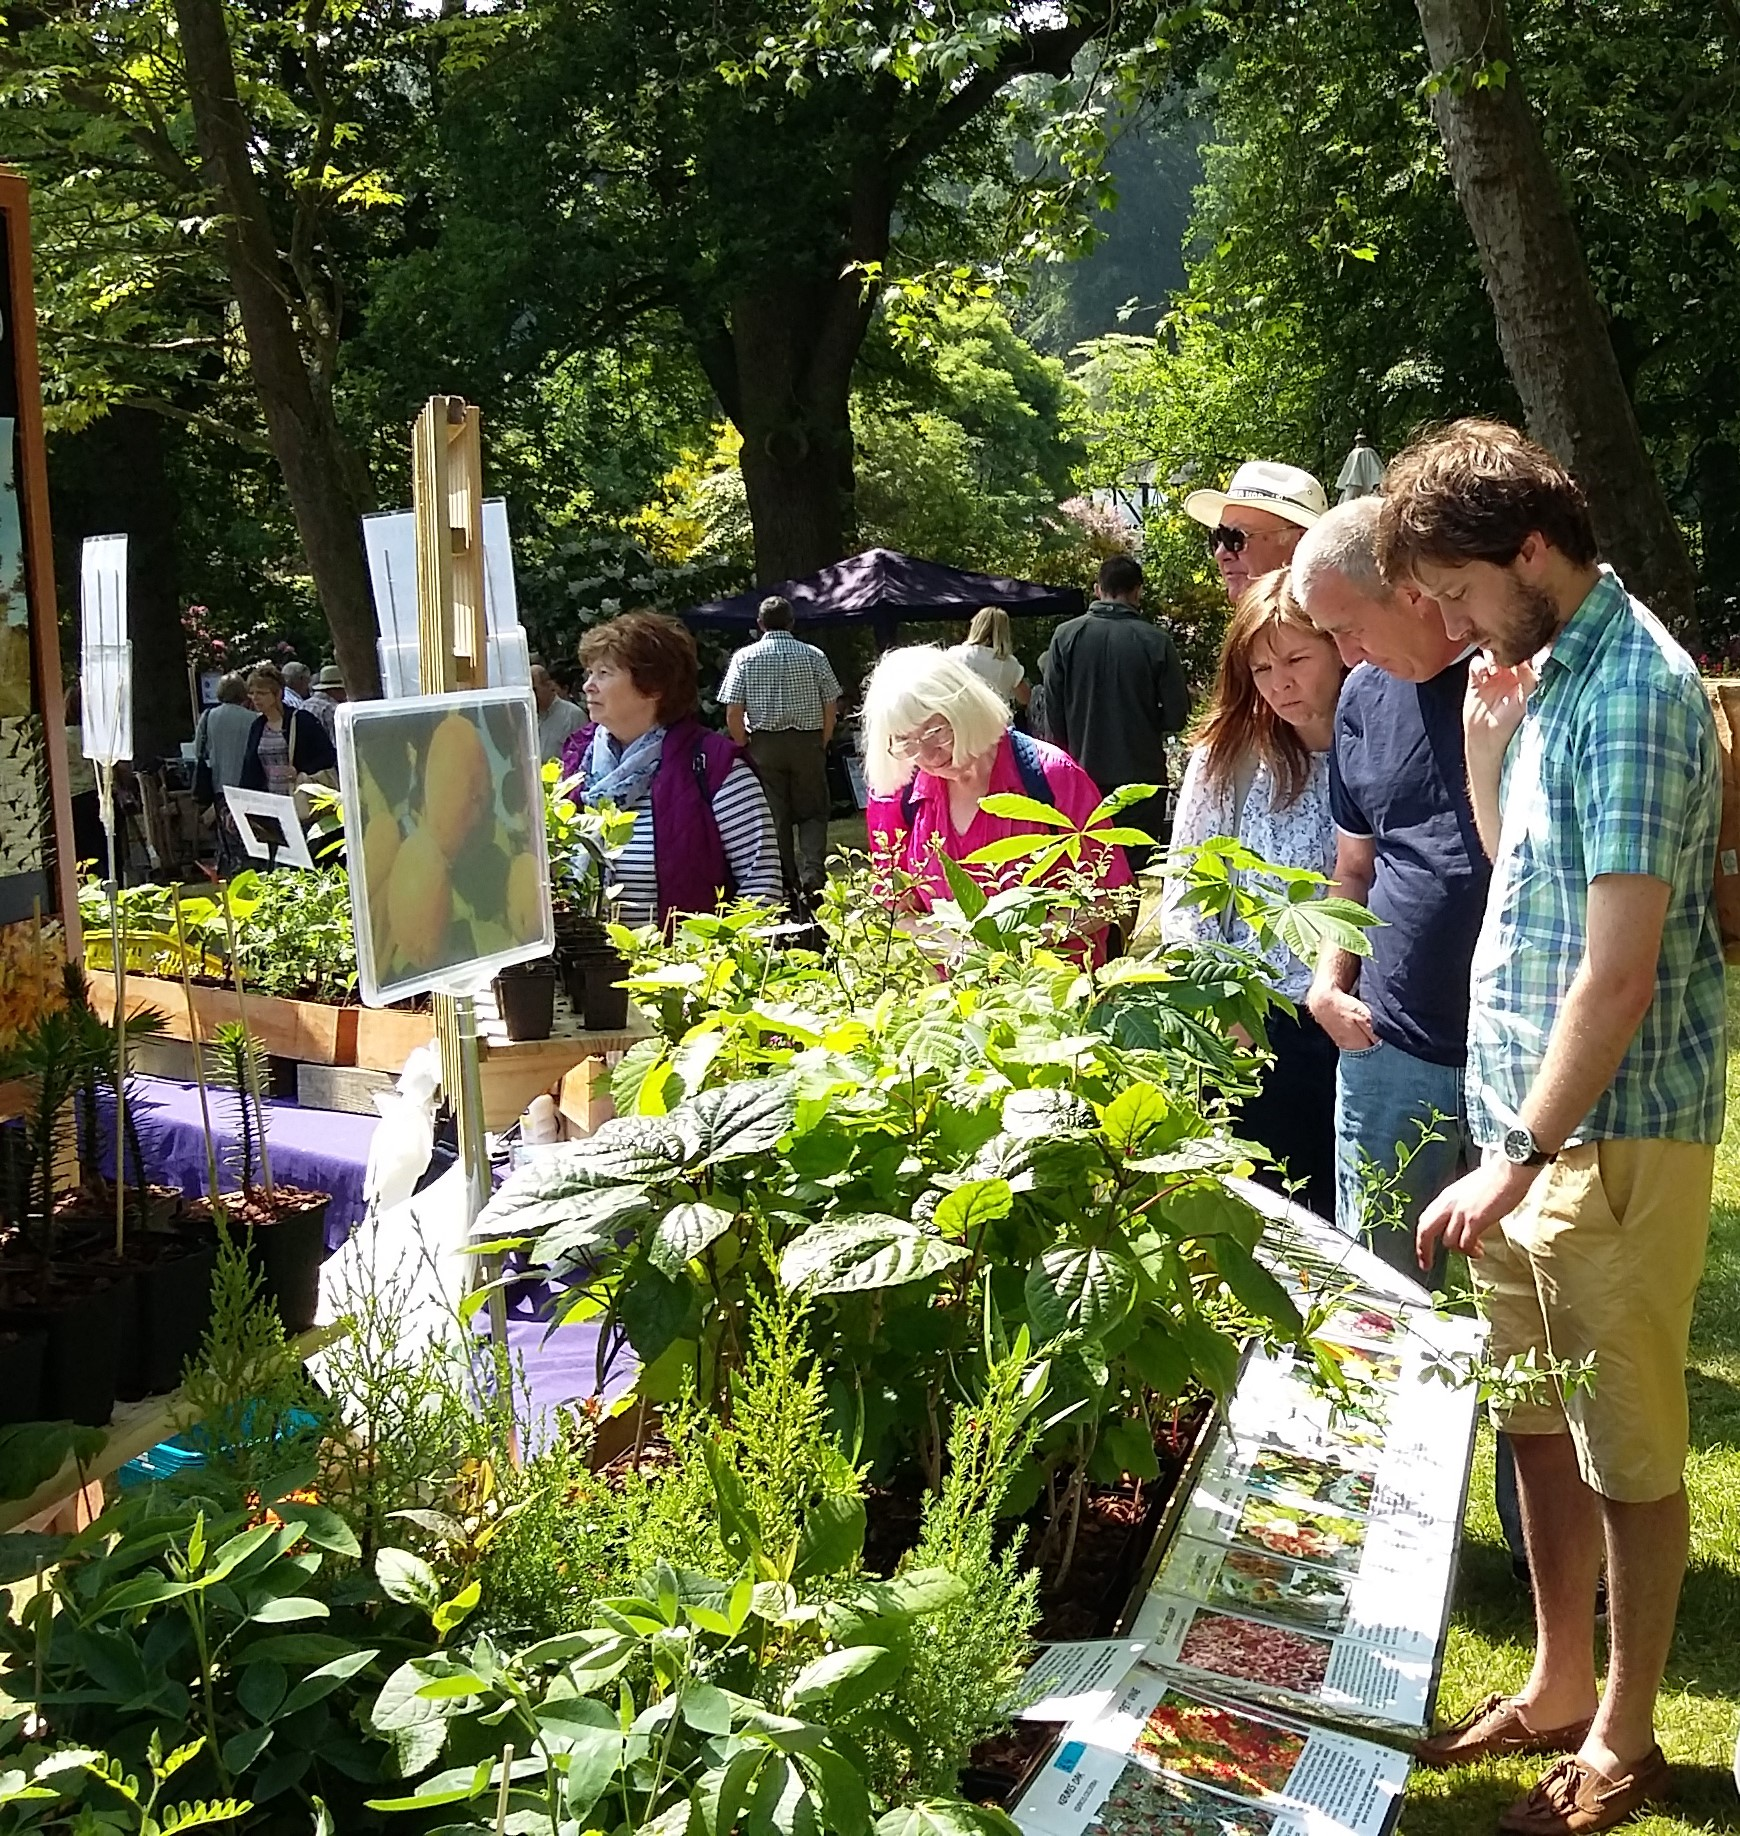 Plant Hunters' Fair at Ness Botanic Gardens on Sunday 25th March